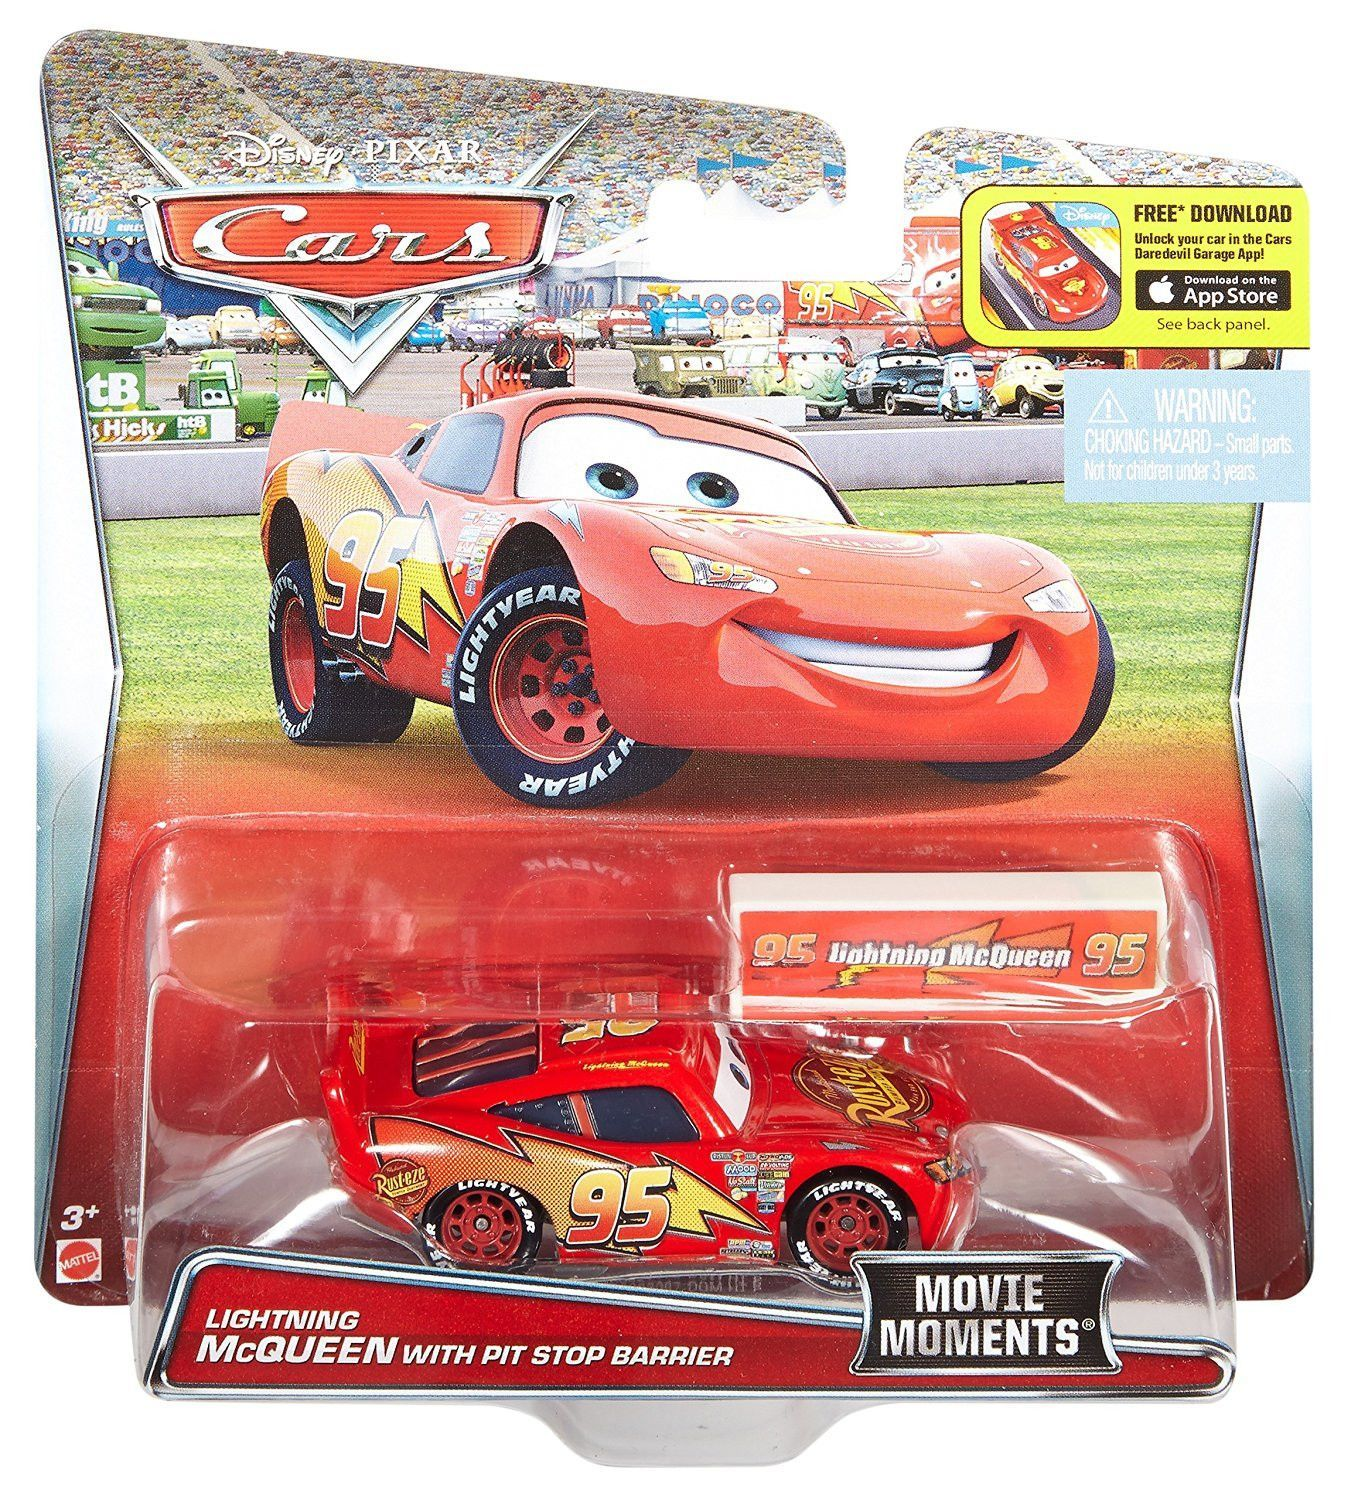 Disney Pixar Cars Movie Moments Singles Lightning Mcqueen Disney Pixar Cars Pixar Cars Cars Movie